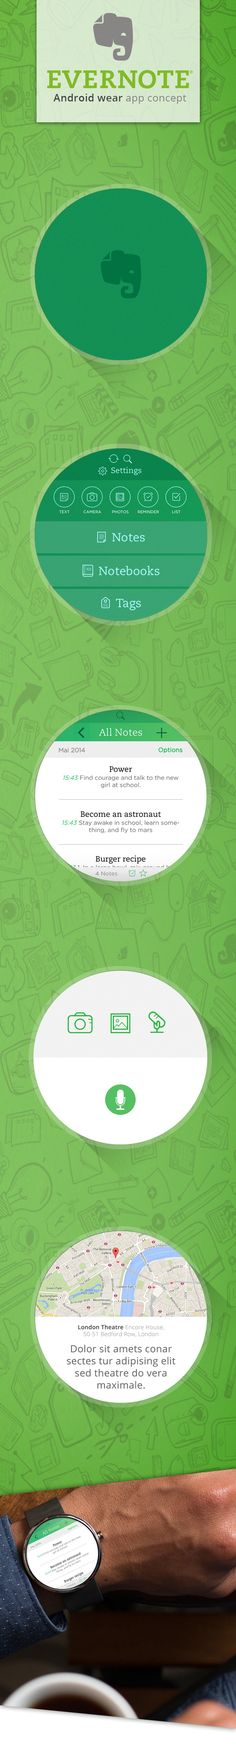 Evernote Portable - Android wear concept by Oliver Günther, via Behance